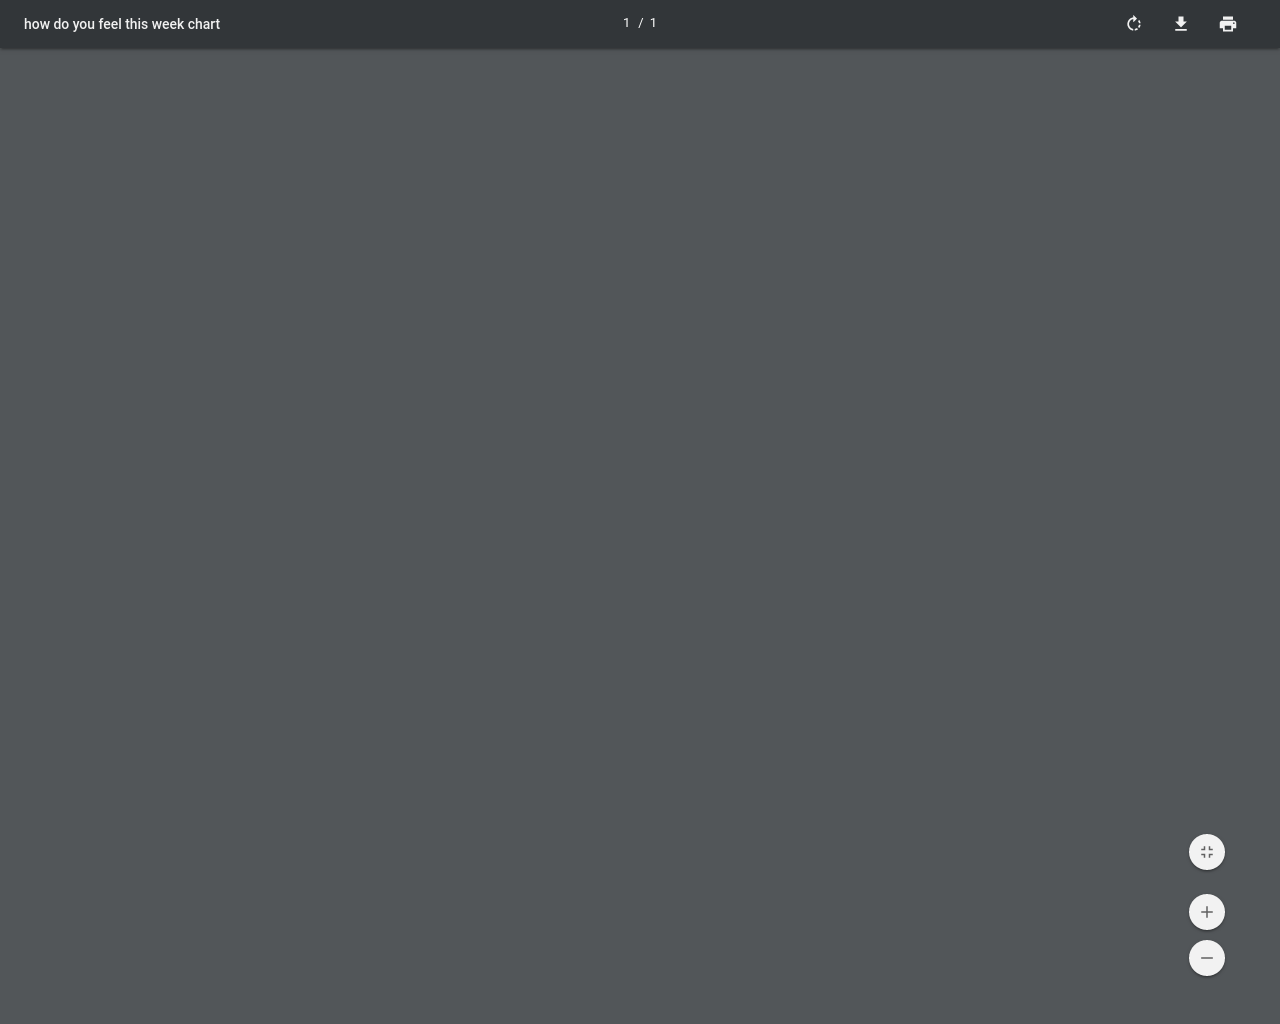 How do you feel this week Chart